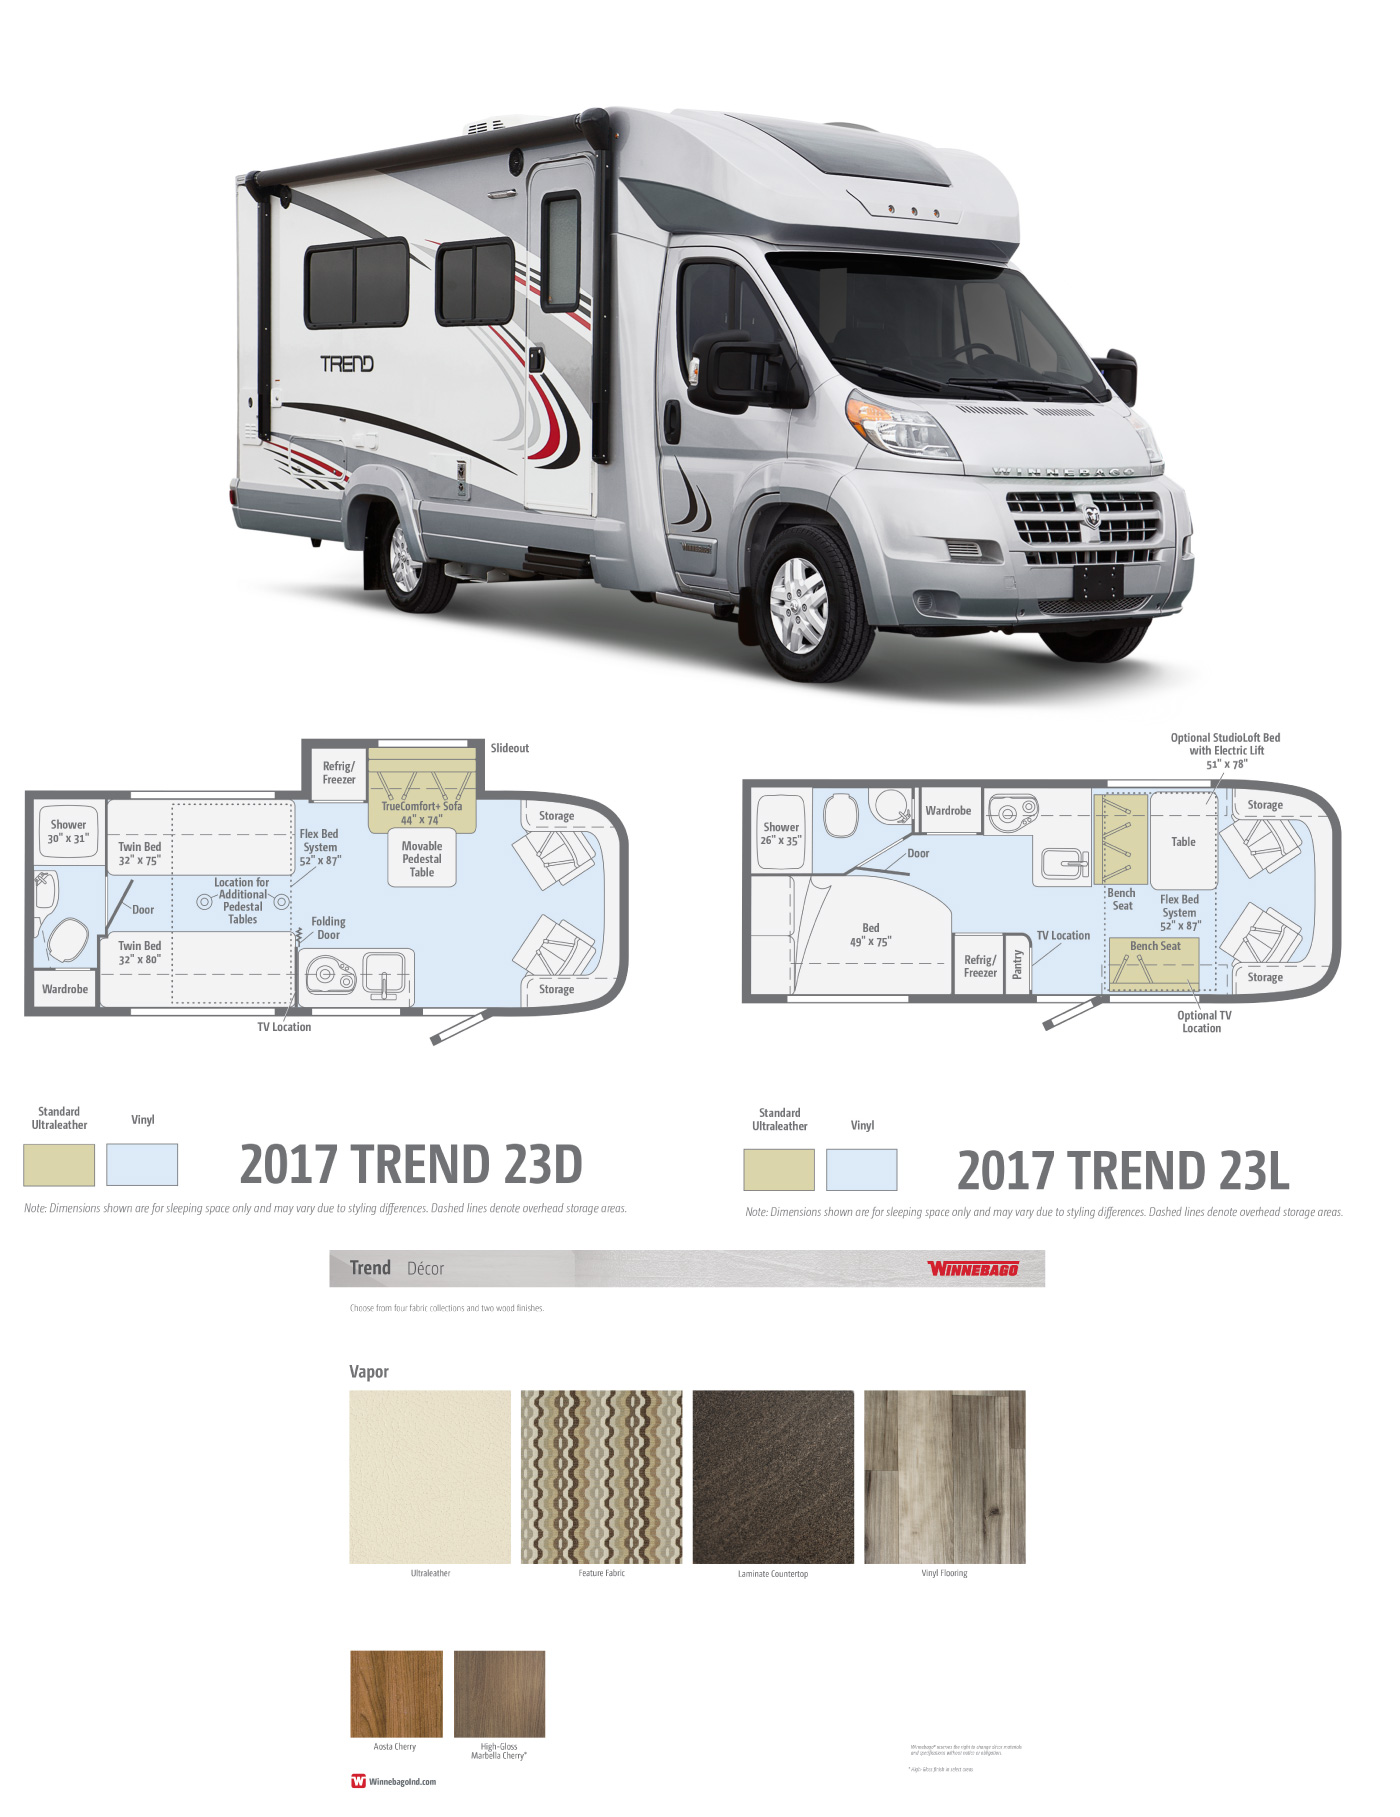 Battle of the Winnebago Compact Coaches – Trend, Fuse, View and